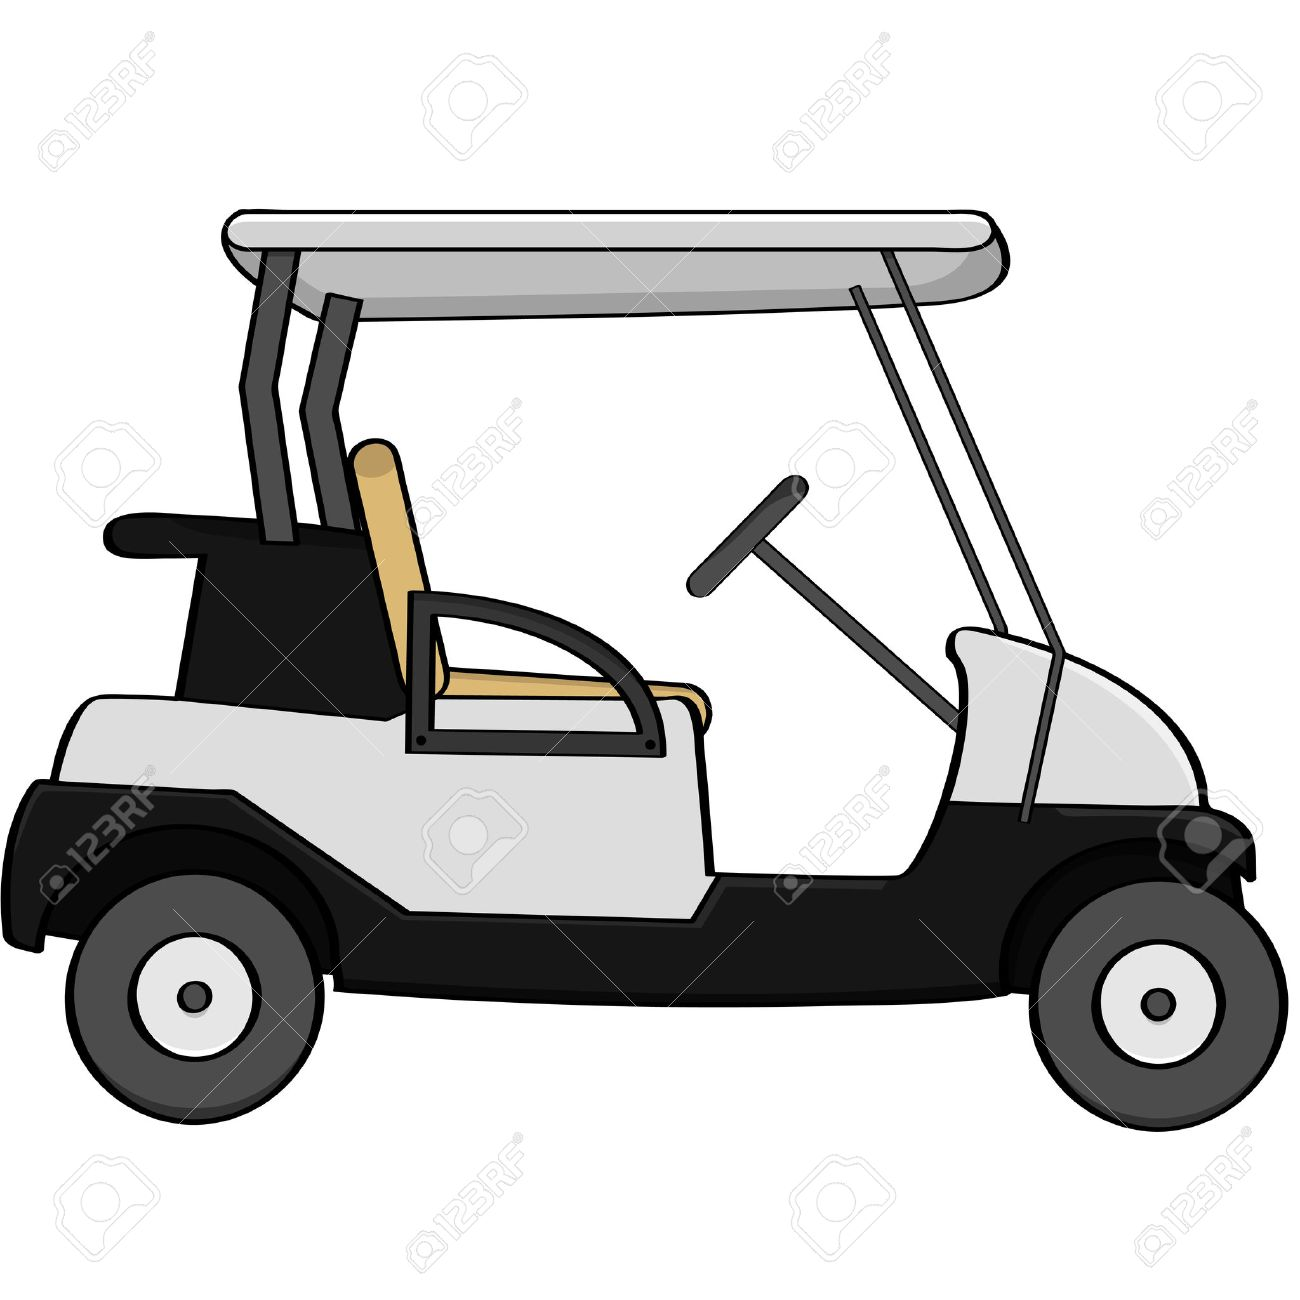 2 490 golf cart stock vector illustration and royalty free golf cart rh 123rf com animated golf cart clip art animated golf cart clip art